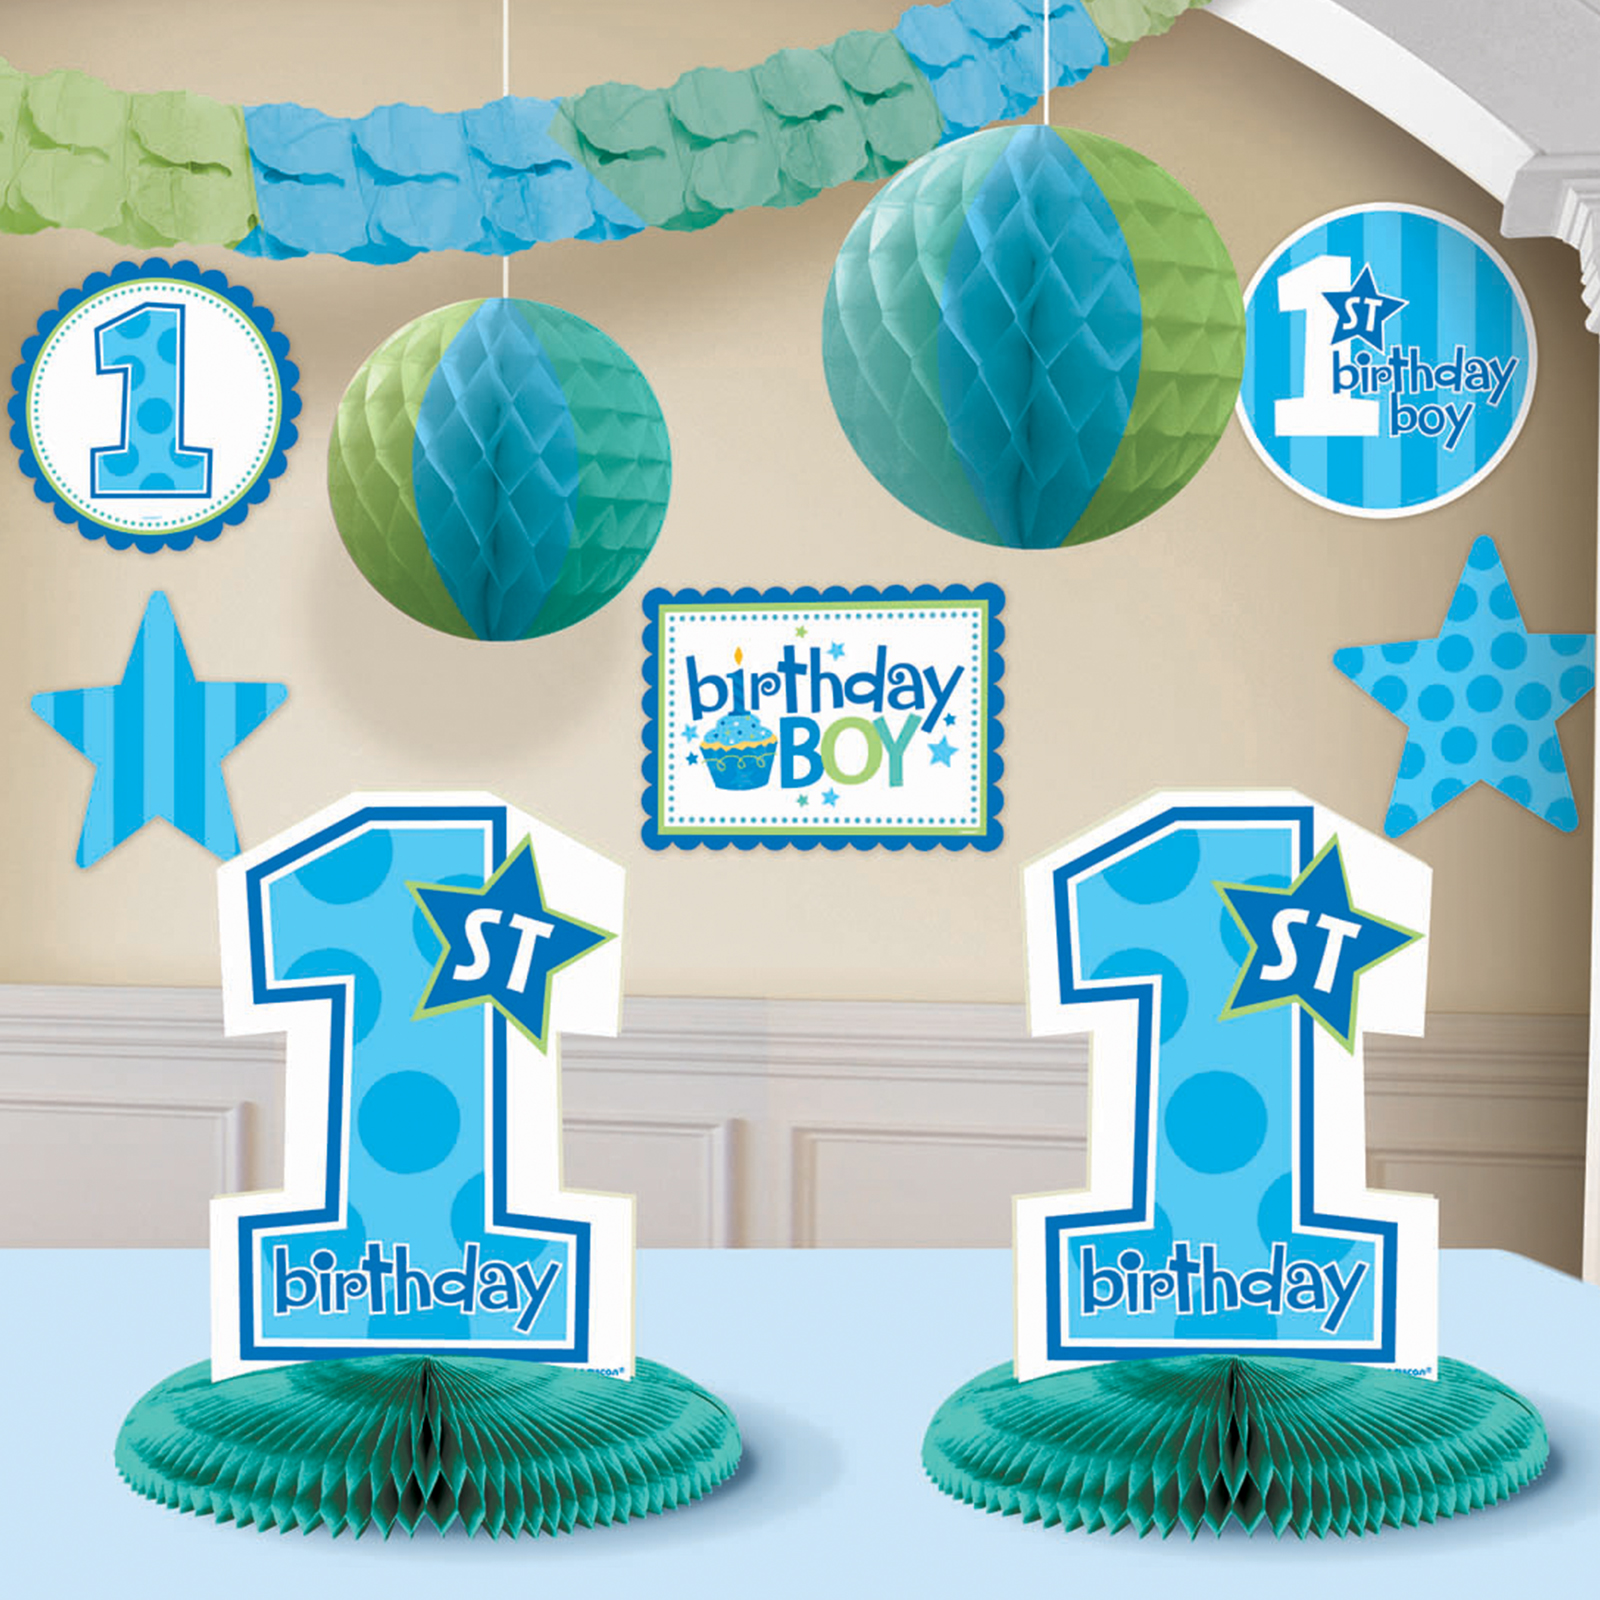 First birthday decorations for a boy image inspiration for 1st birthday party decoration for boys